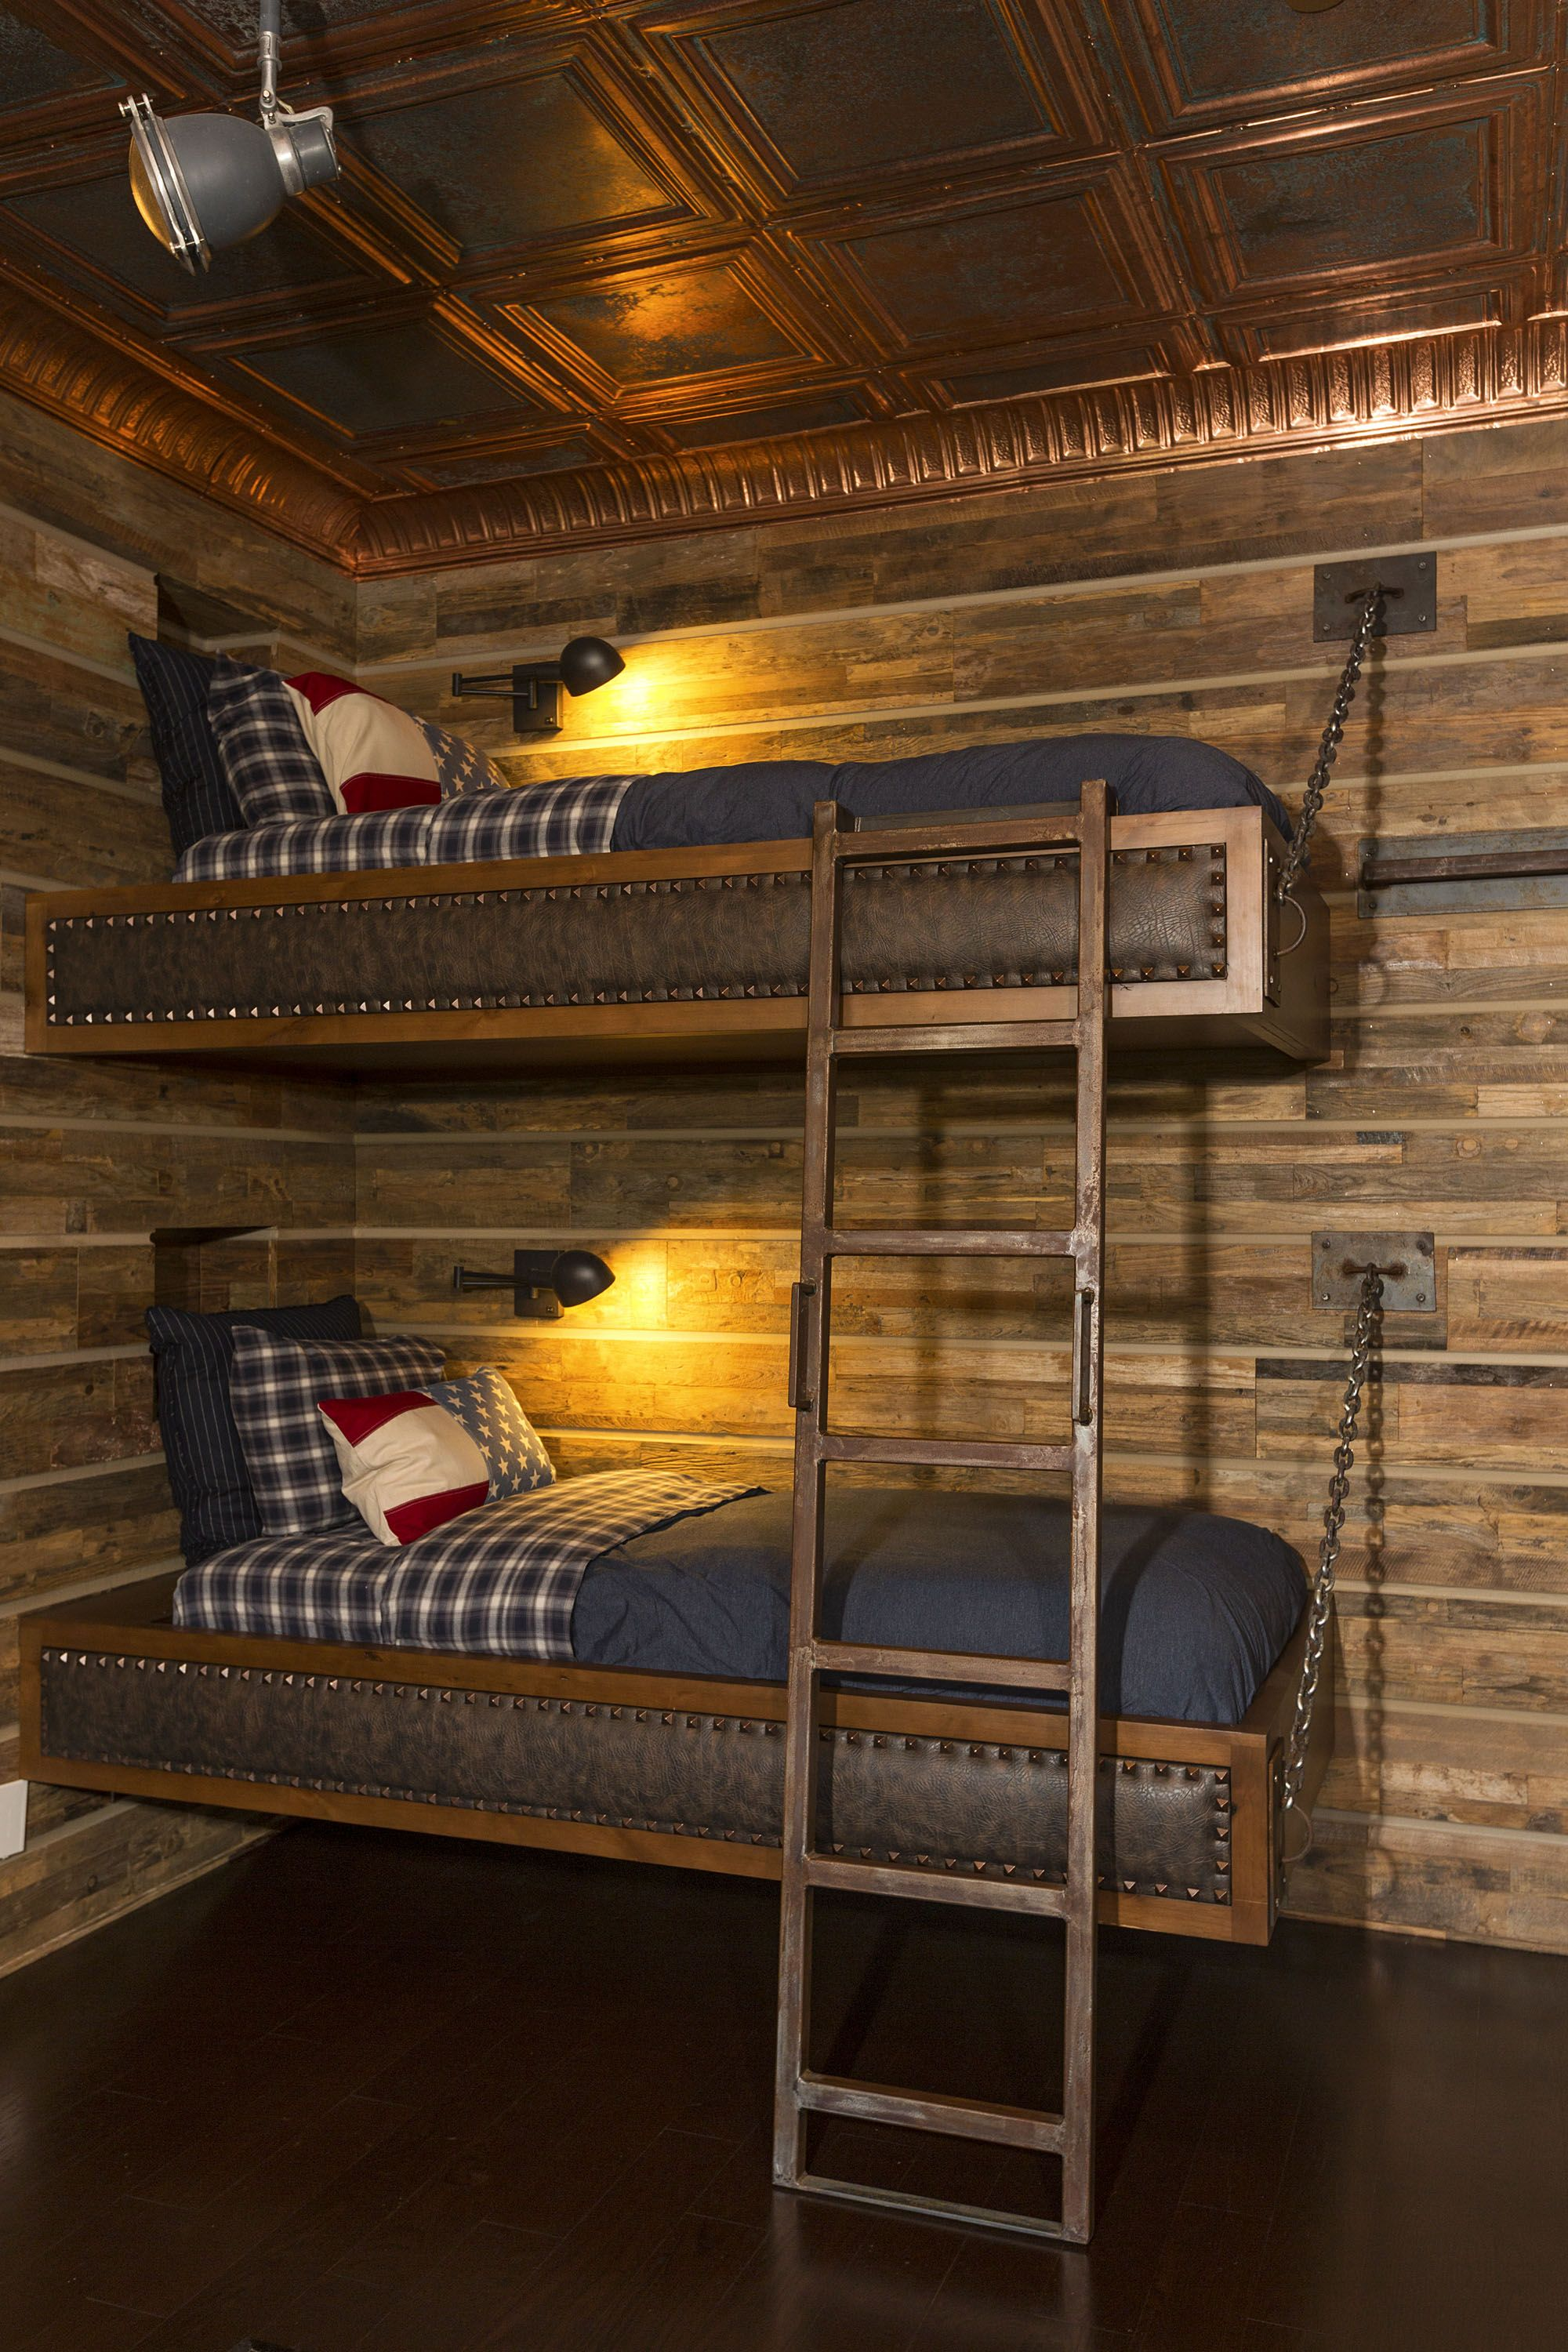 Man cave modern log cabin ralph lauren style bunk beds by for Log cabin style bunk beds